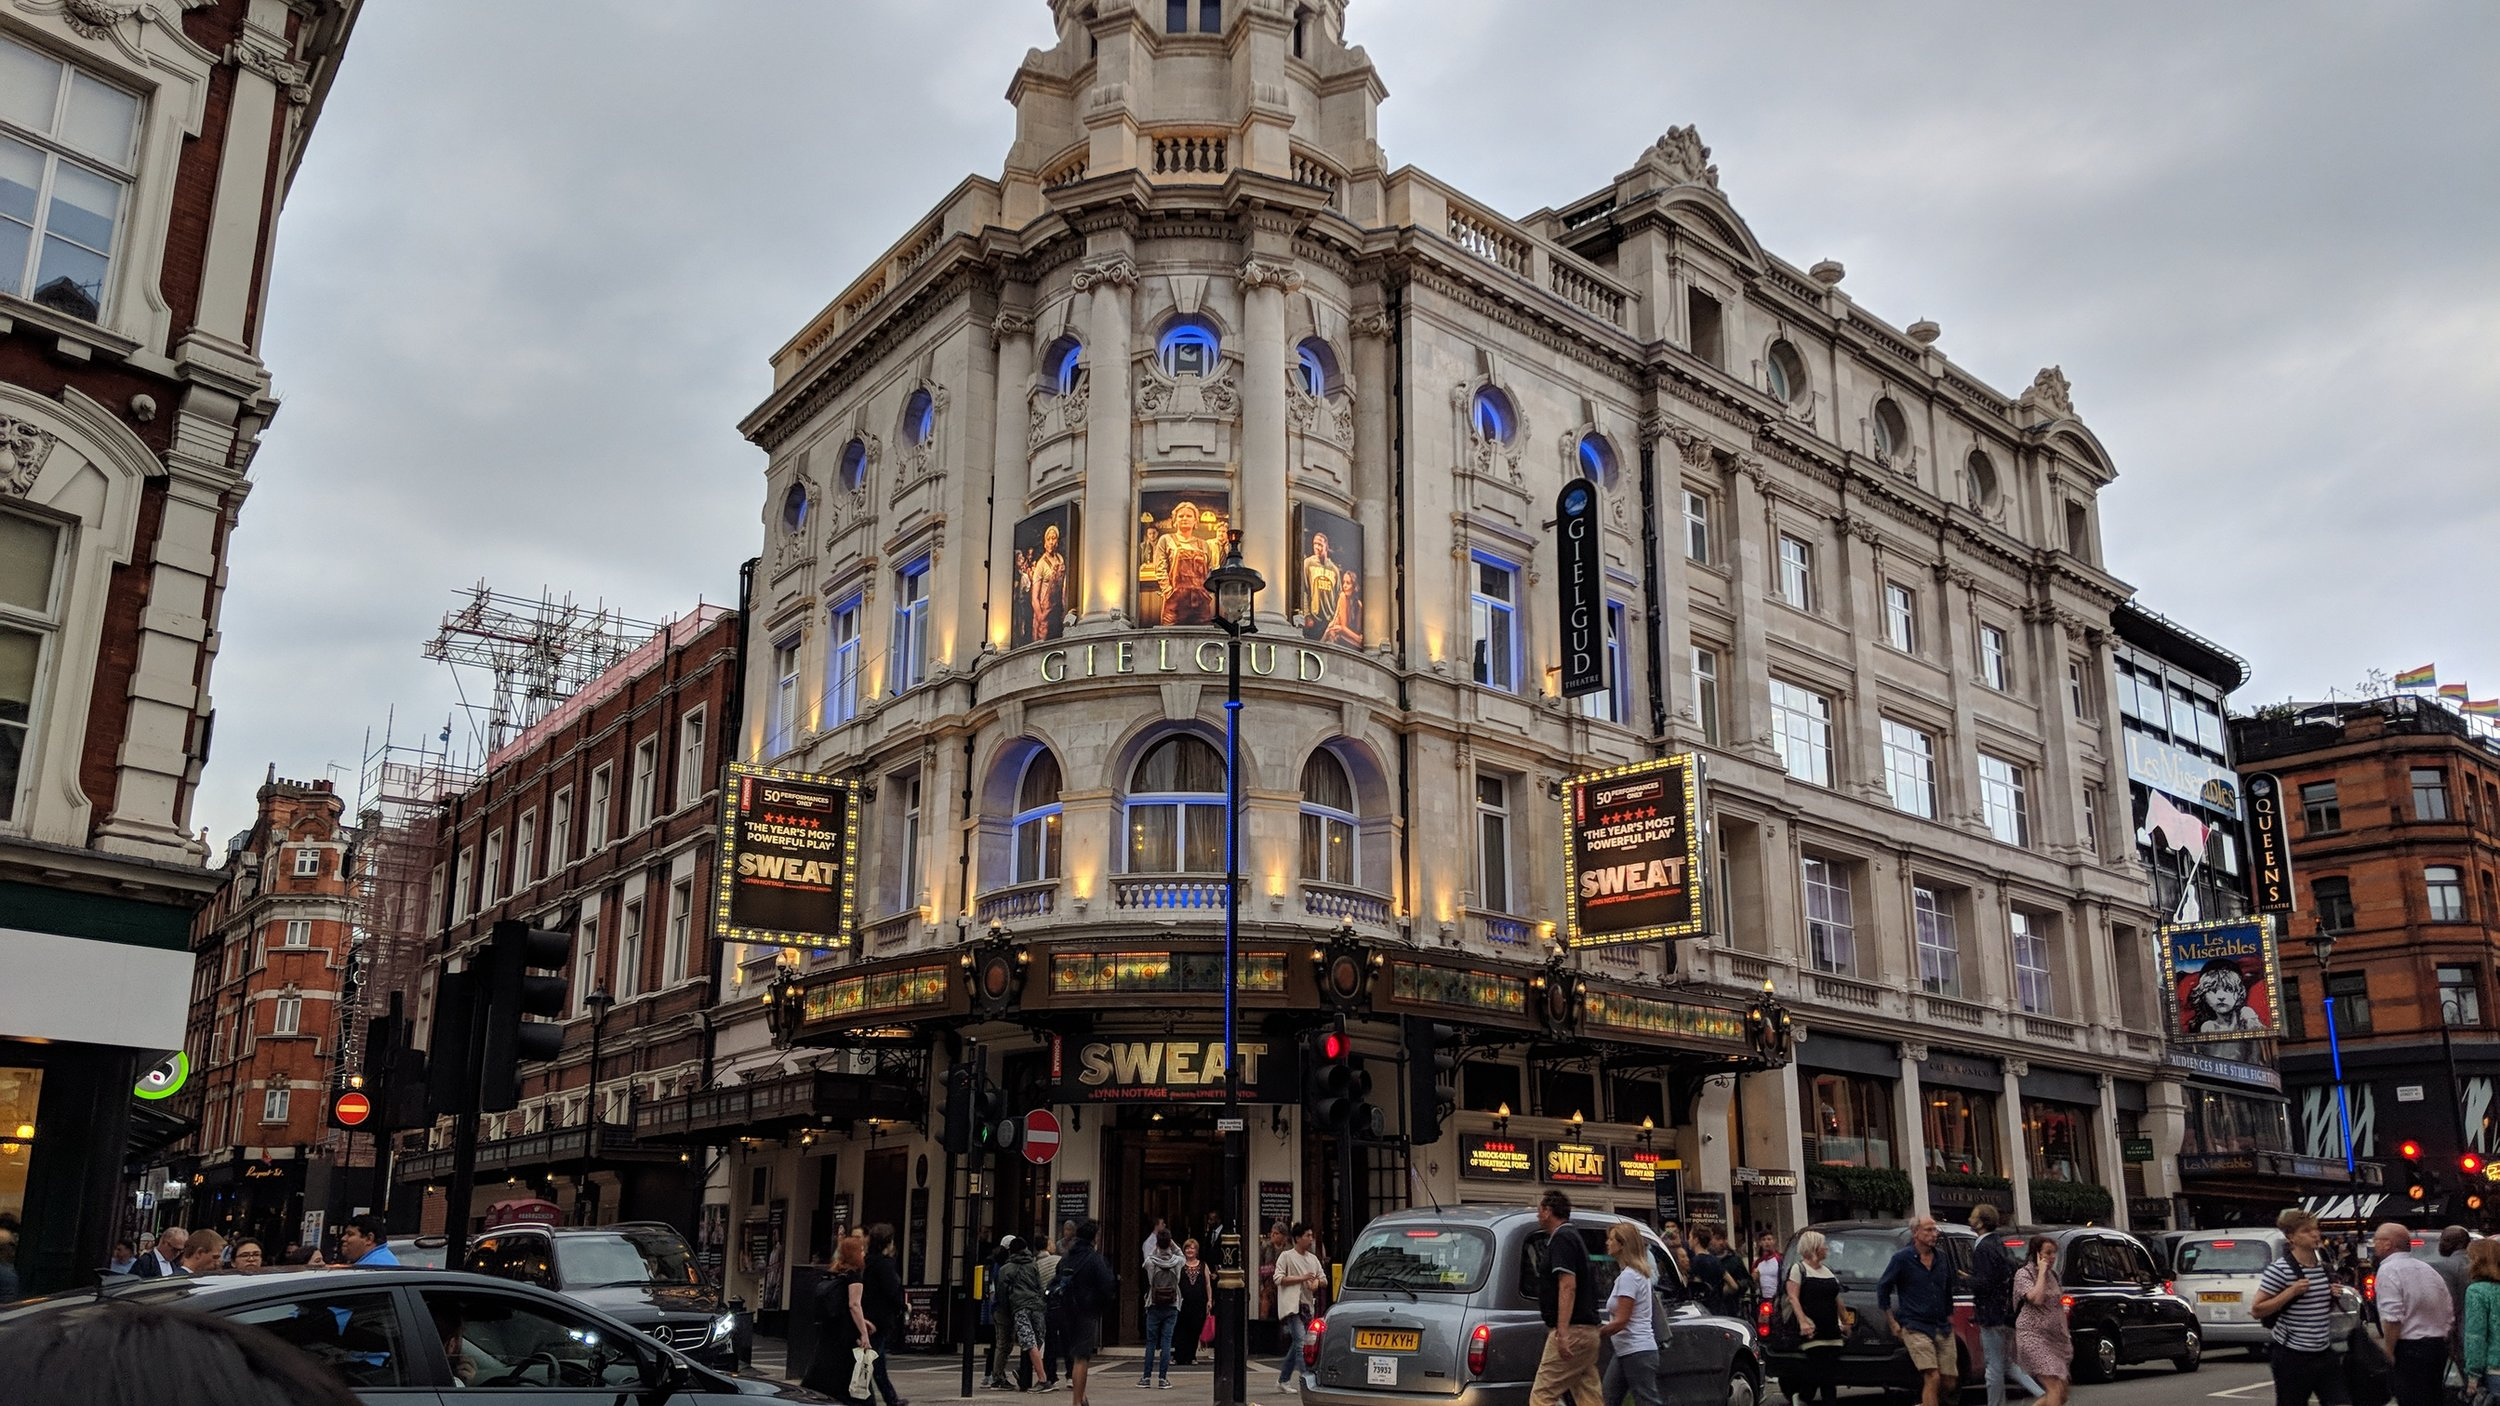 Gielgud Theatre - visited 08/07/2019